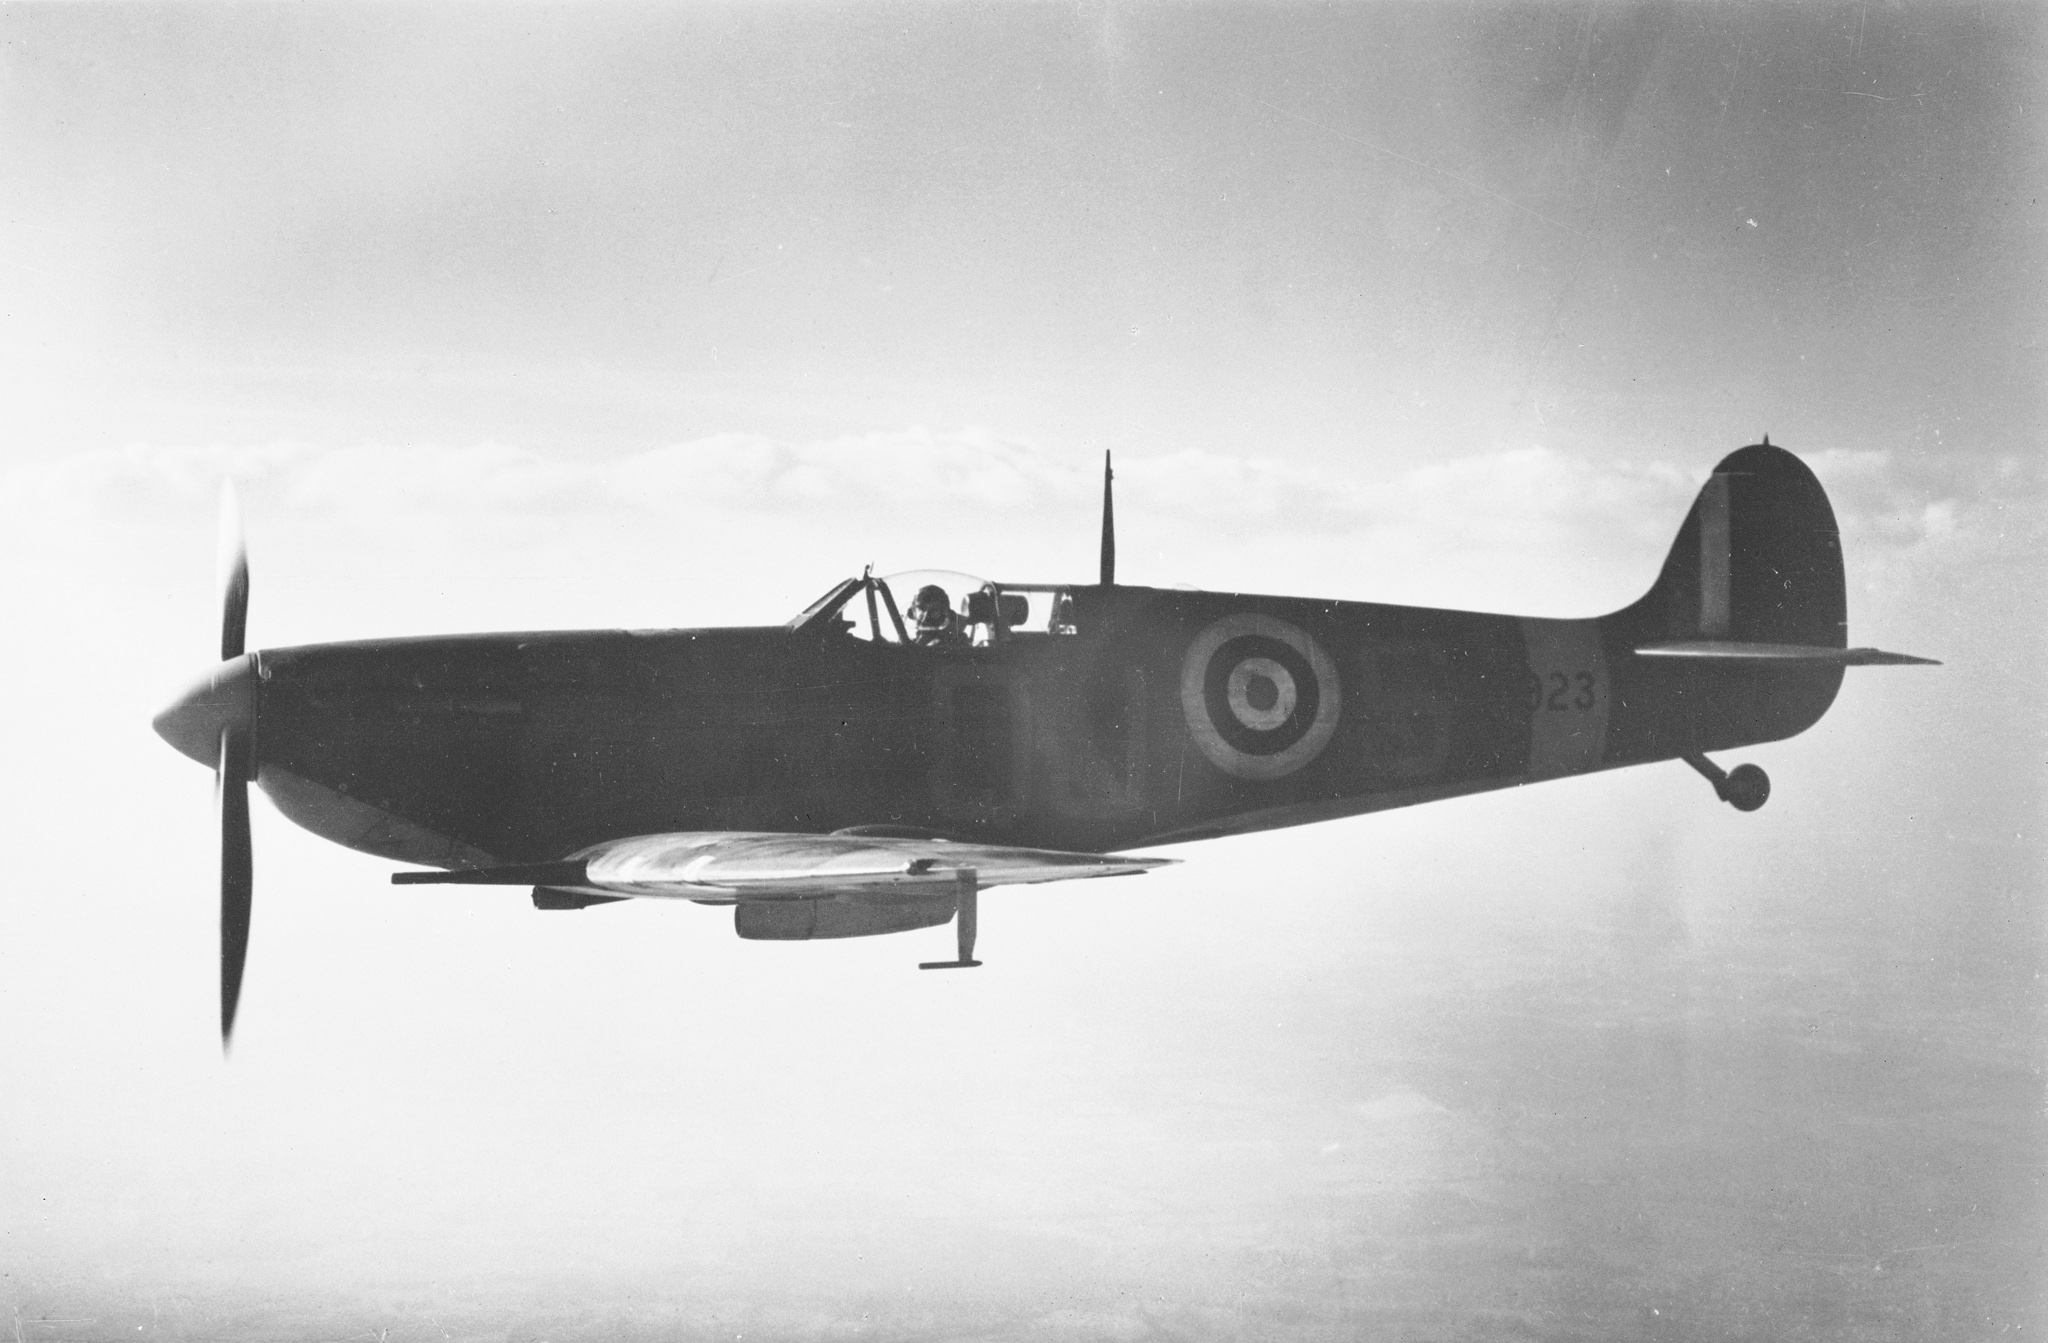 A Supermarine Spitfire similar to the aircraft flown by Pilot Officer Magee with No. 412 (Fighter) Squadron, RCAF, at RAF Digby, Lincolnshire, during the Second World War, in flight in October 1941. PHOTO: DND Archives